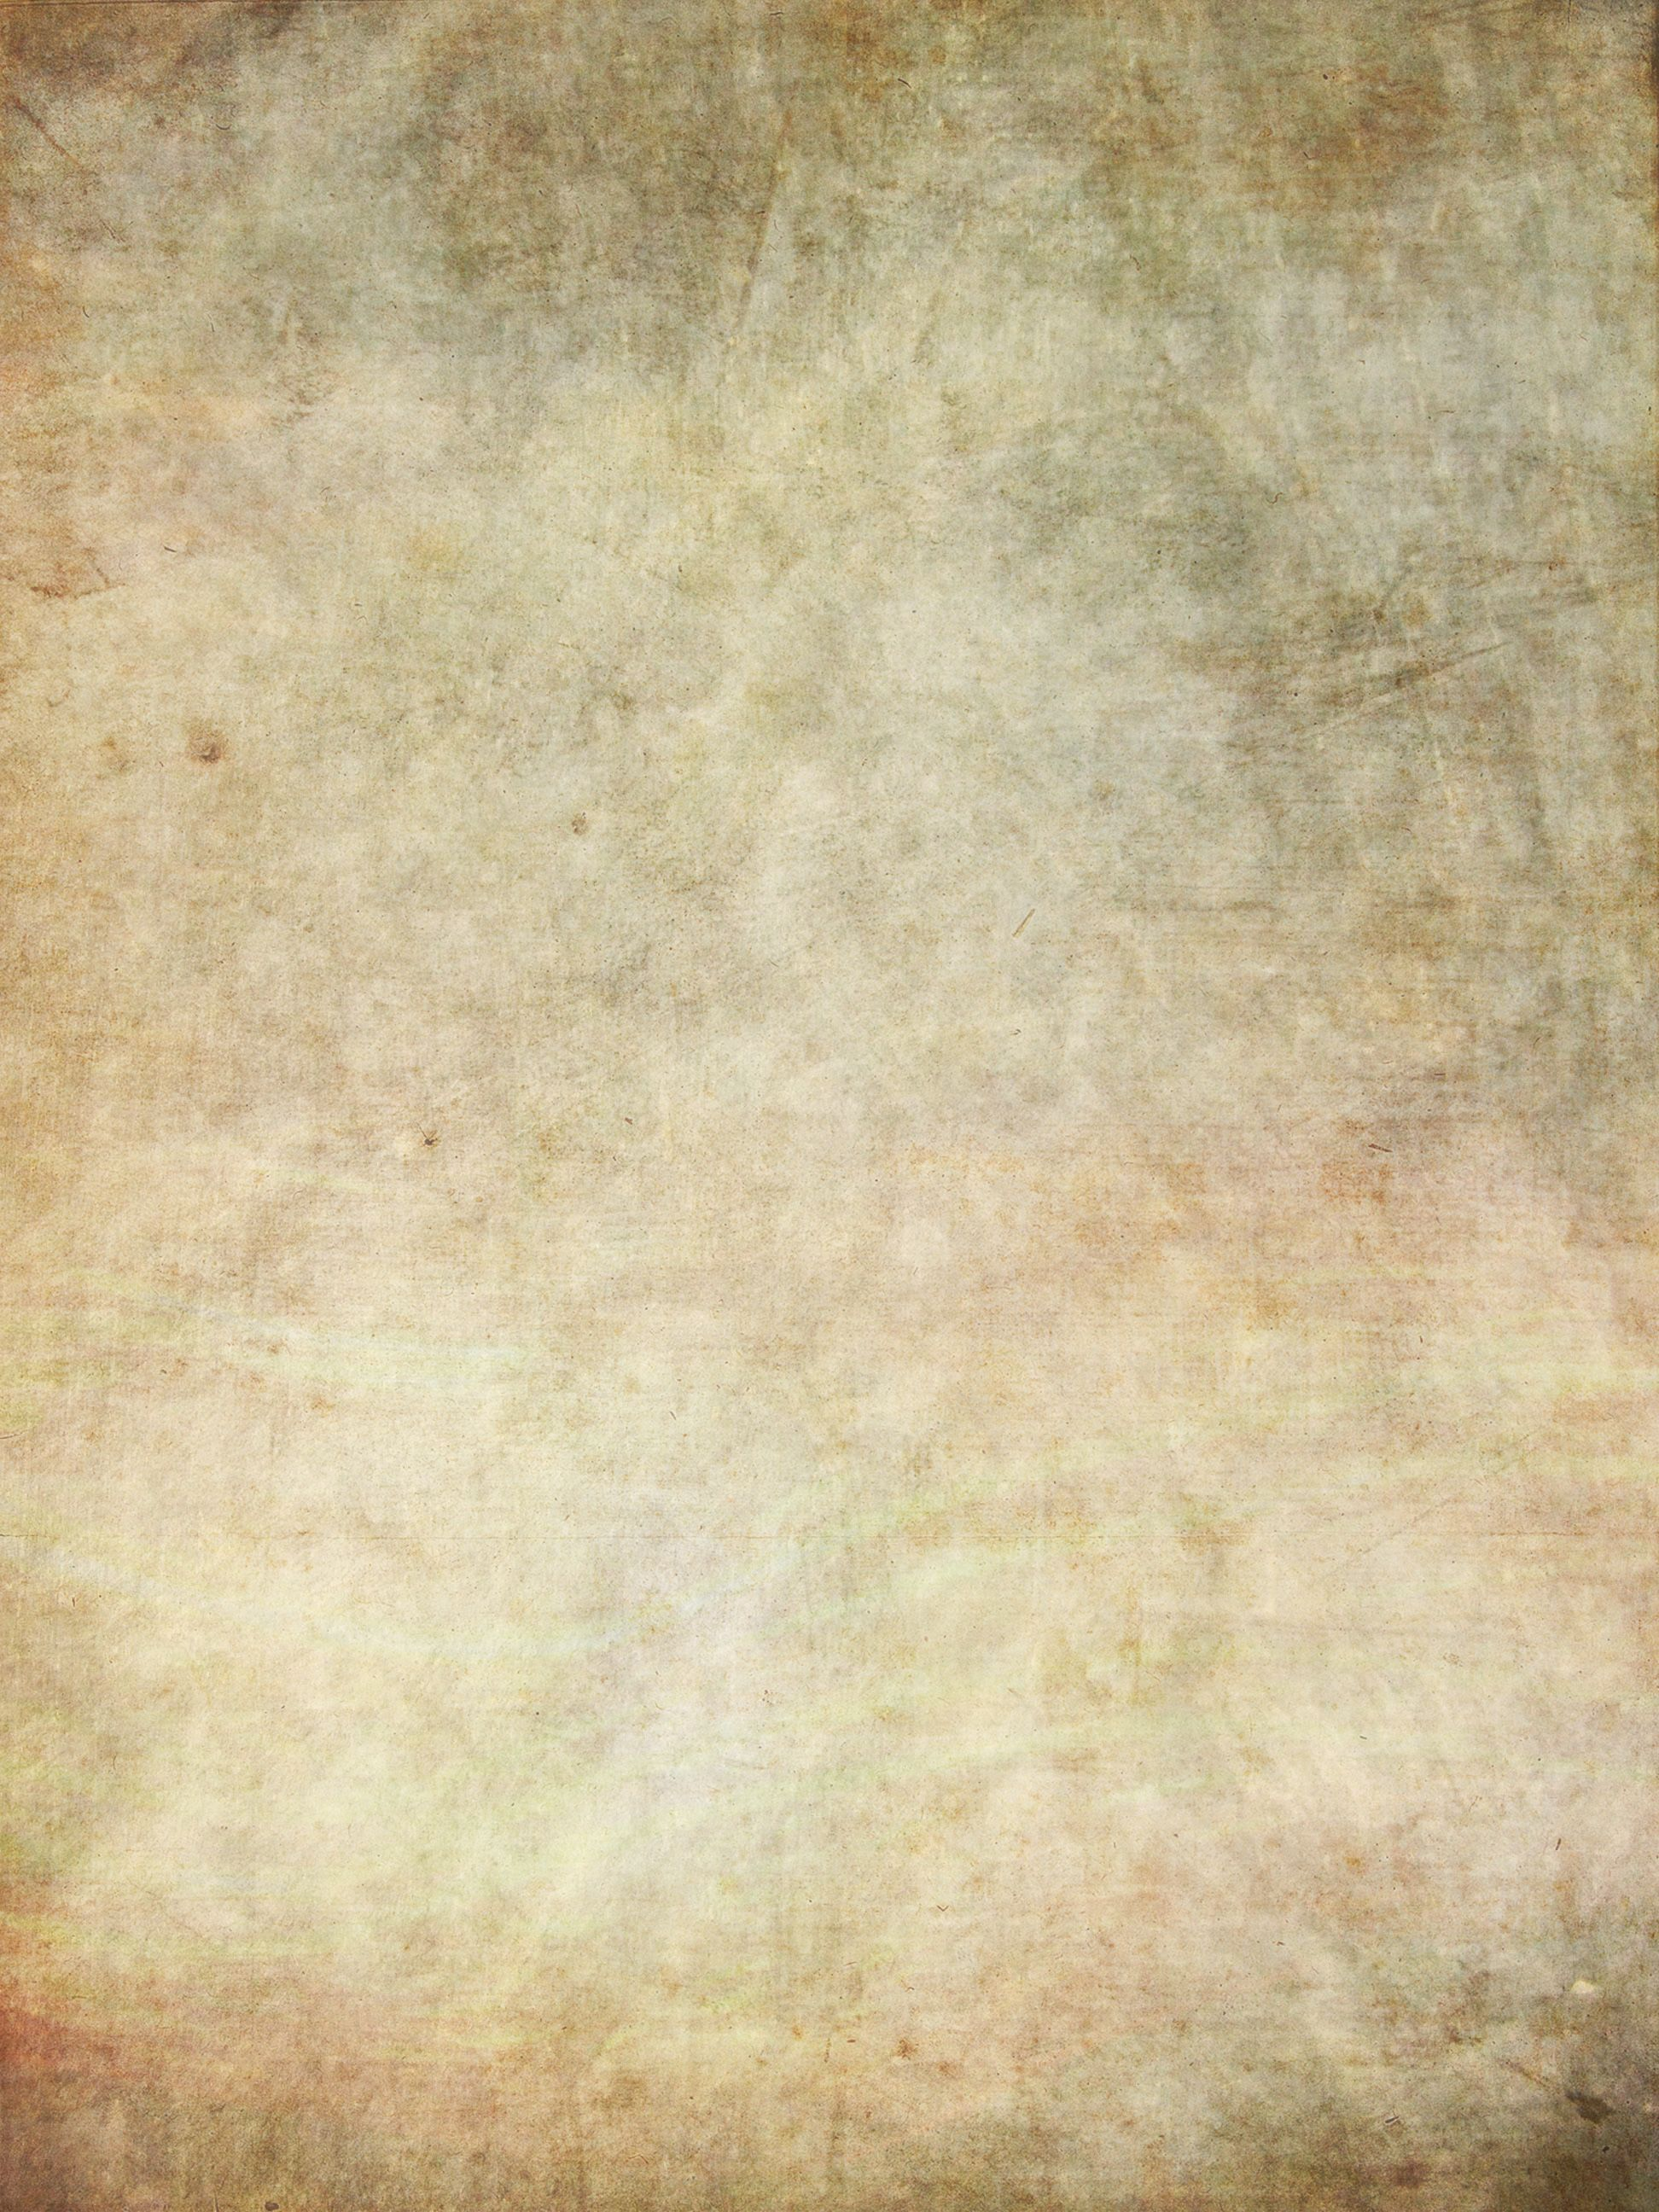 Download Texture Texture Paper Paper Texture Old Battered Paper Download Photo Image Background Backgroun Paper Texture Vintage Paper Textures Old Paper